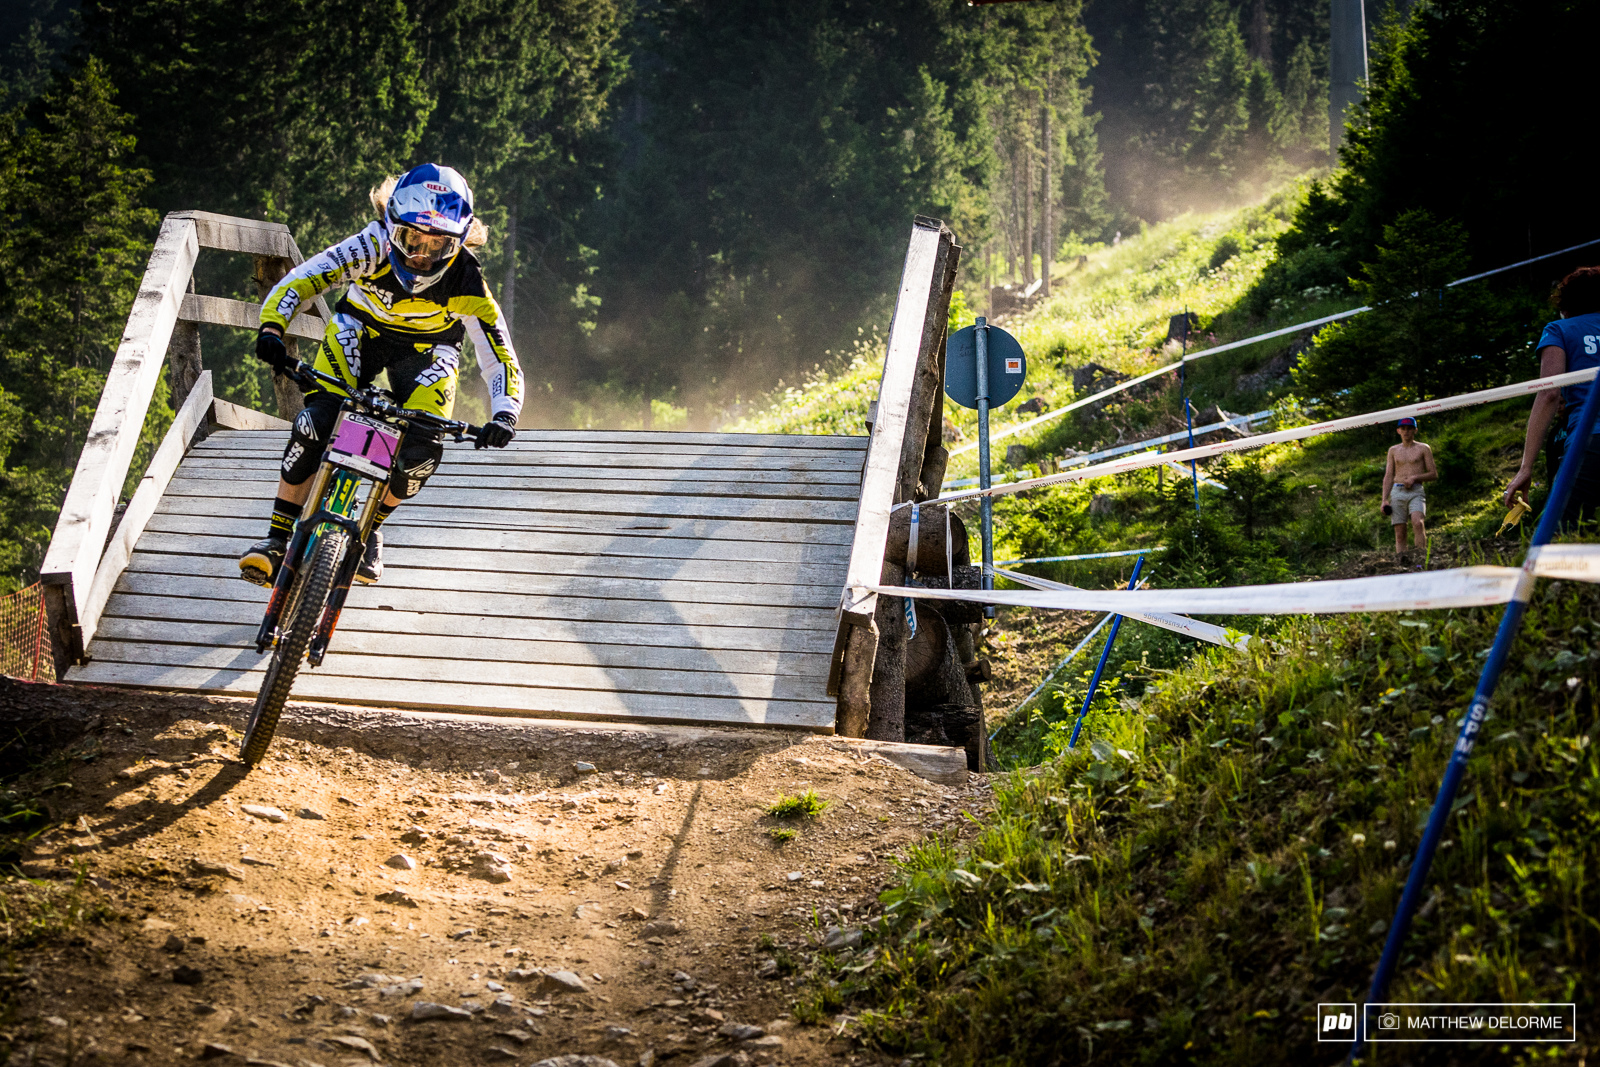 Rachel Atherton has full command of the season so far. She was five seconds up on second place Manon Carpenter.